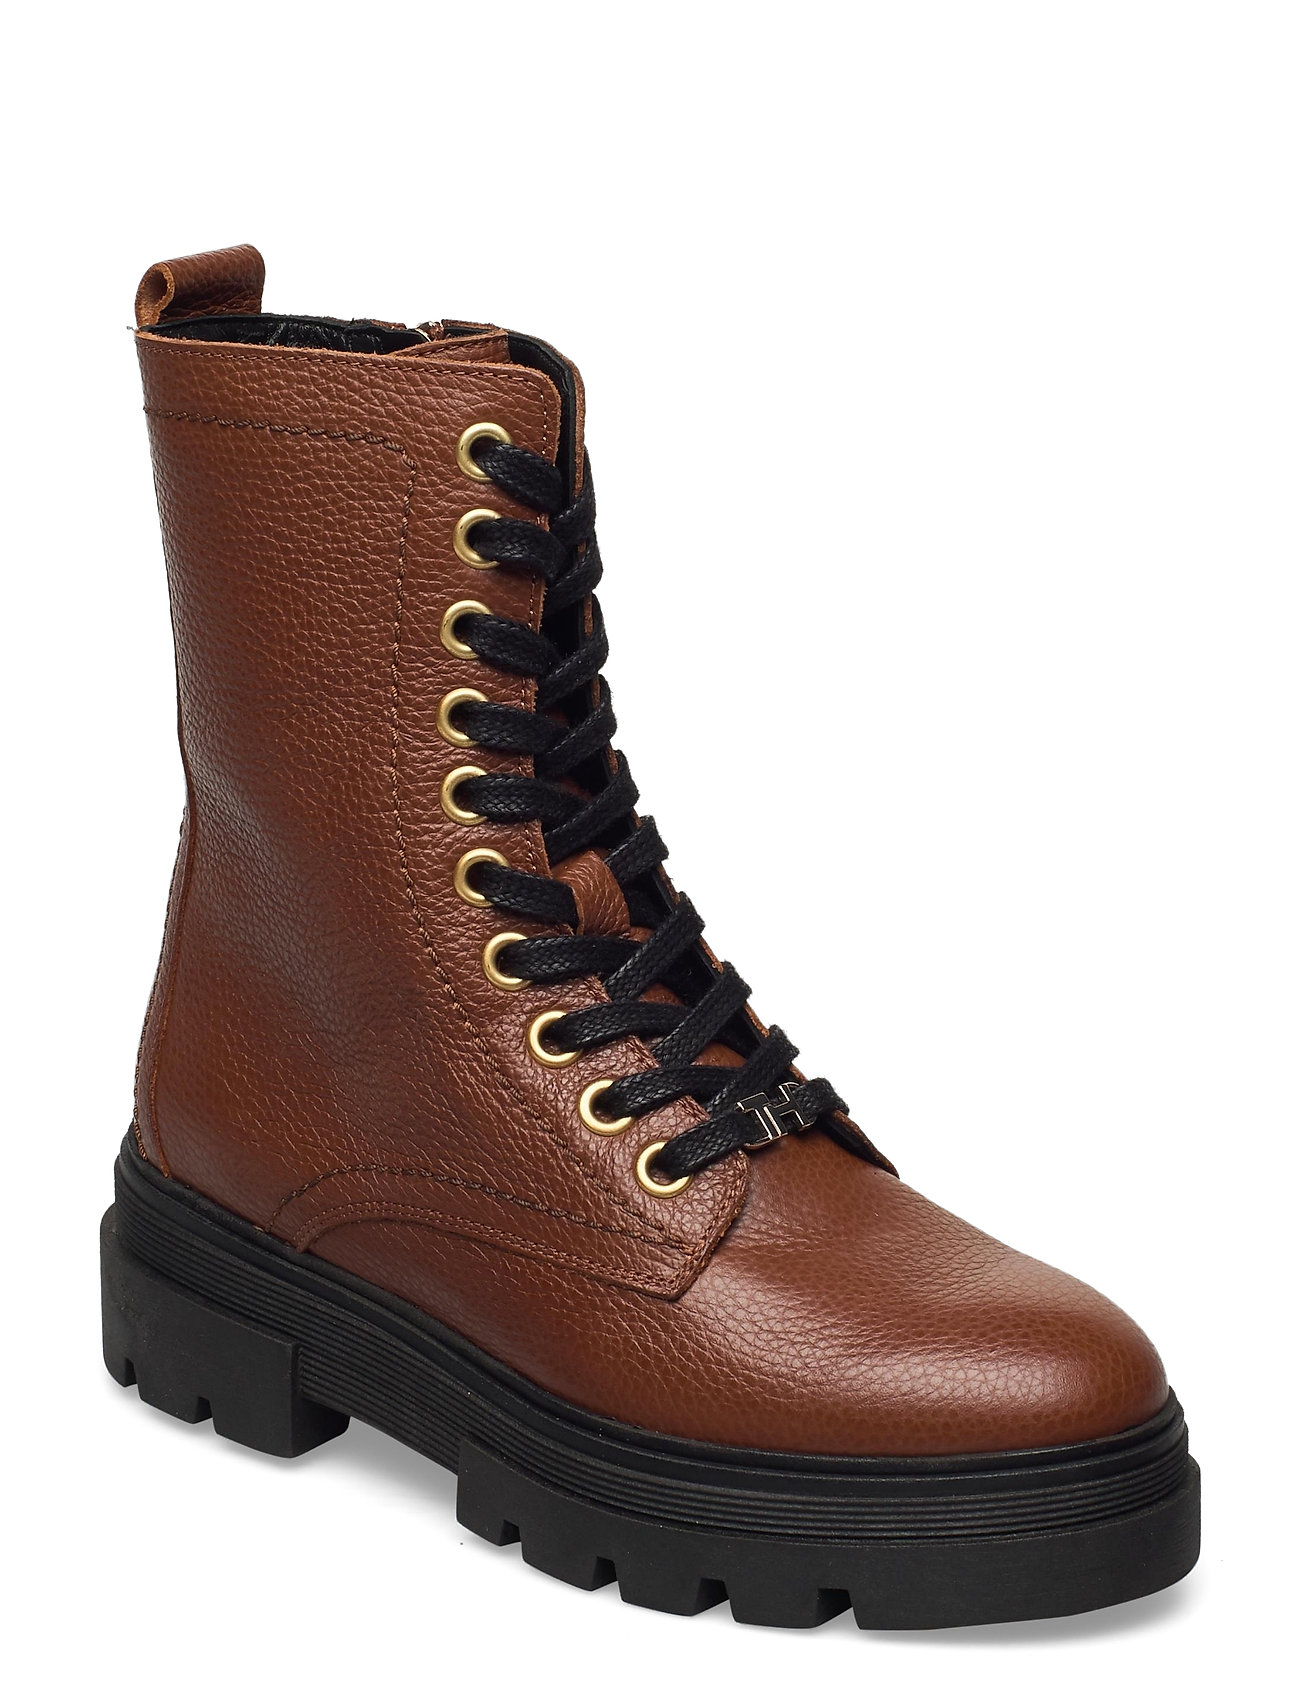 Image of Rugged Classic Bootie Shoes Boots Ankle Boots Ankle Boot - Flat Brun Tommy Hilfiger (3456990959)